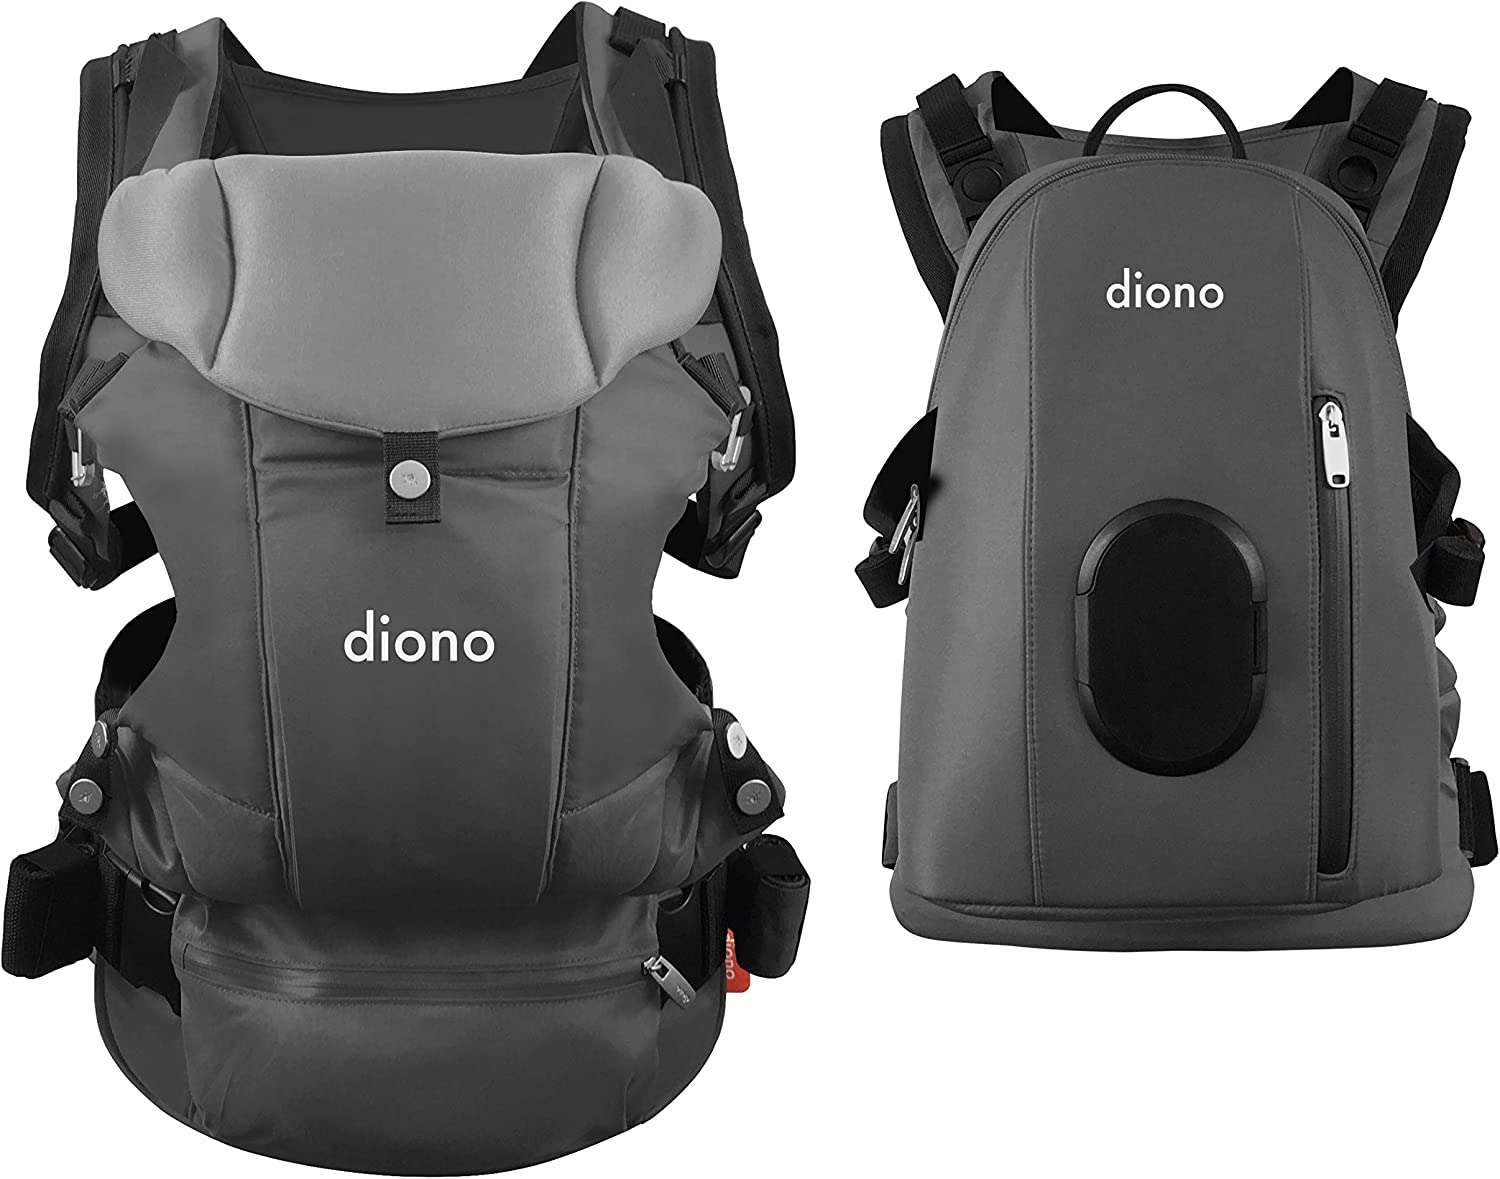 4-in-1 Baby Carrier System with Detachable Backpack Diono Carus Complete Black from 3.2-15 kg 2018 Model